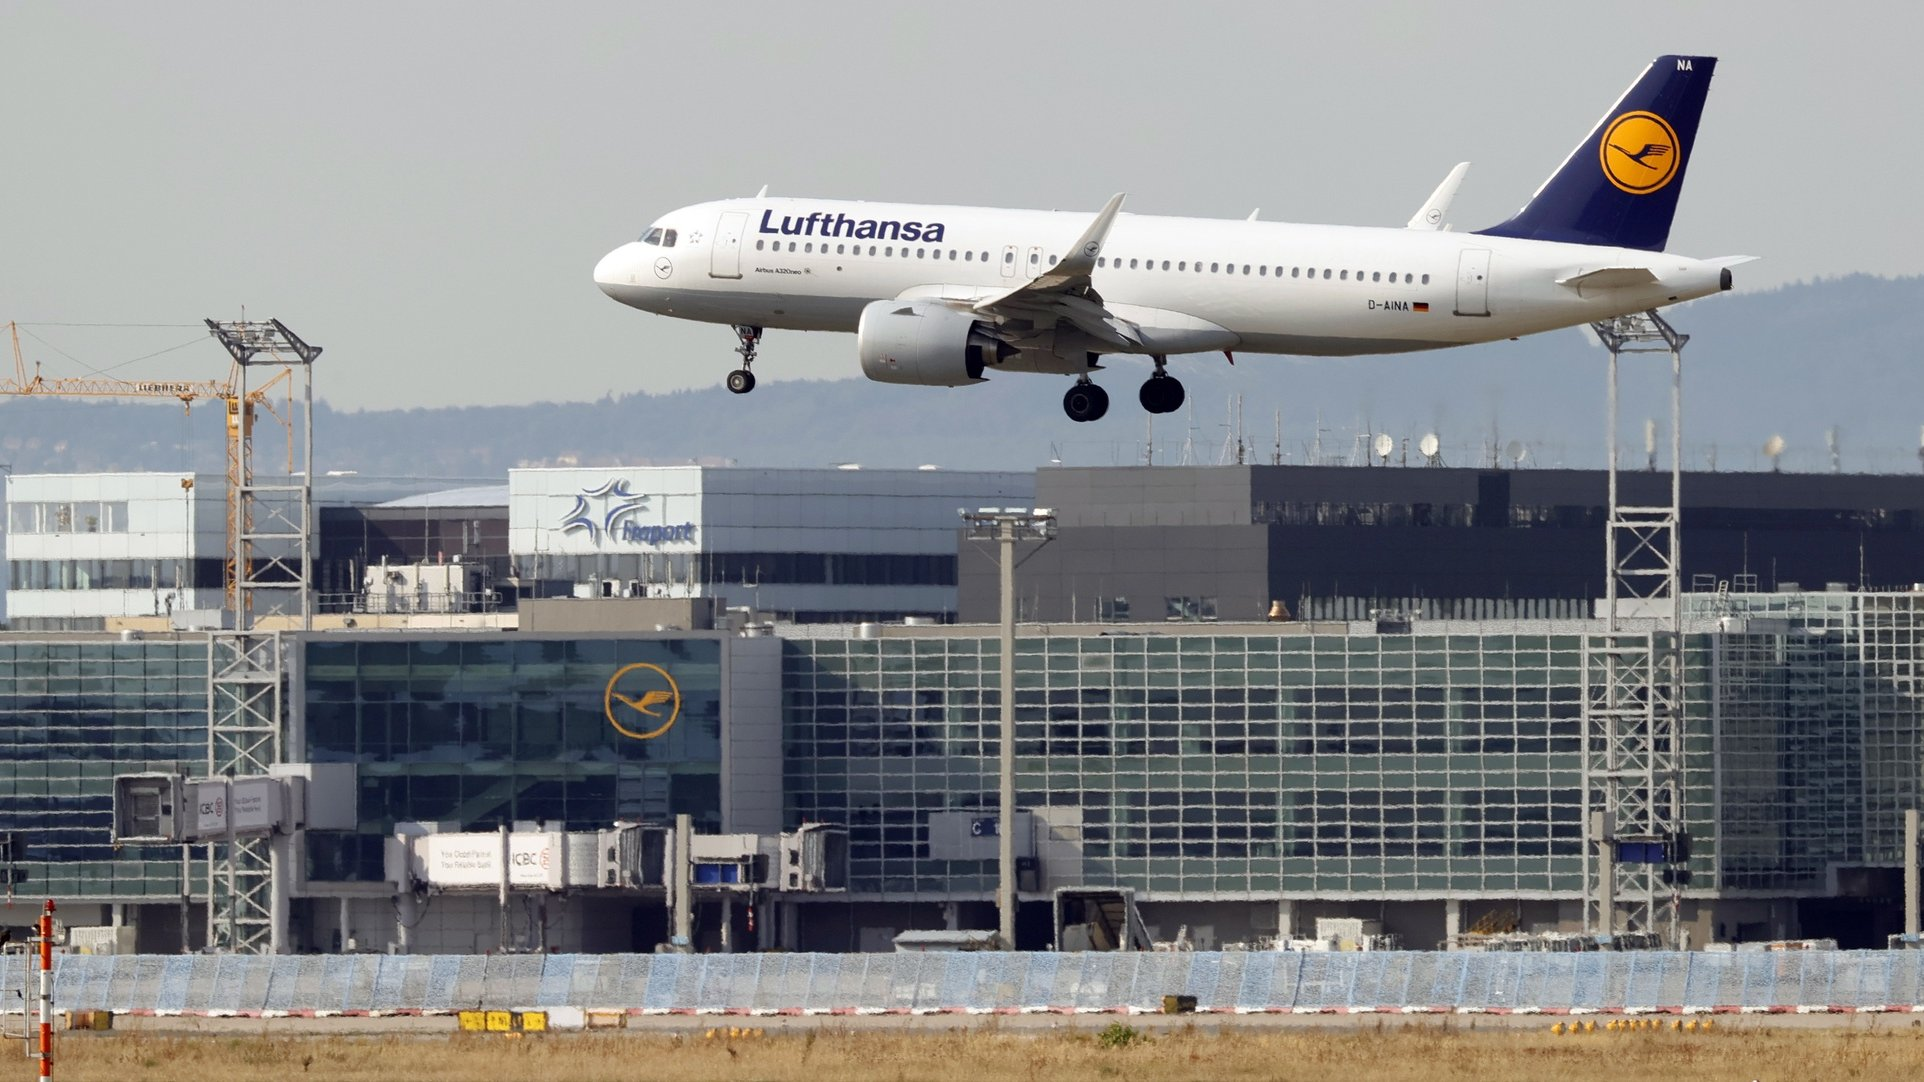 epa08673217 An aircraft of German flag carrier Lufthansa lands at the international airport in Frankfurt am Main, Germany, 16 September 2020. Airports and airlines around the world took increased measures to stem the widespread of the SARS-CoV-2 coronavirus which causes the Covid-19 disease.  EPA/RONALD WITTEK